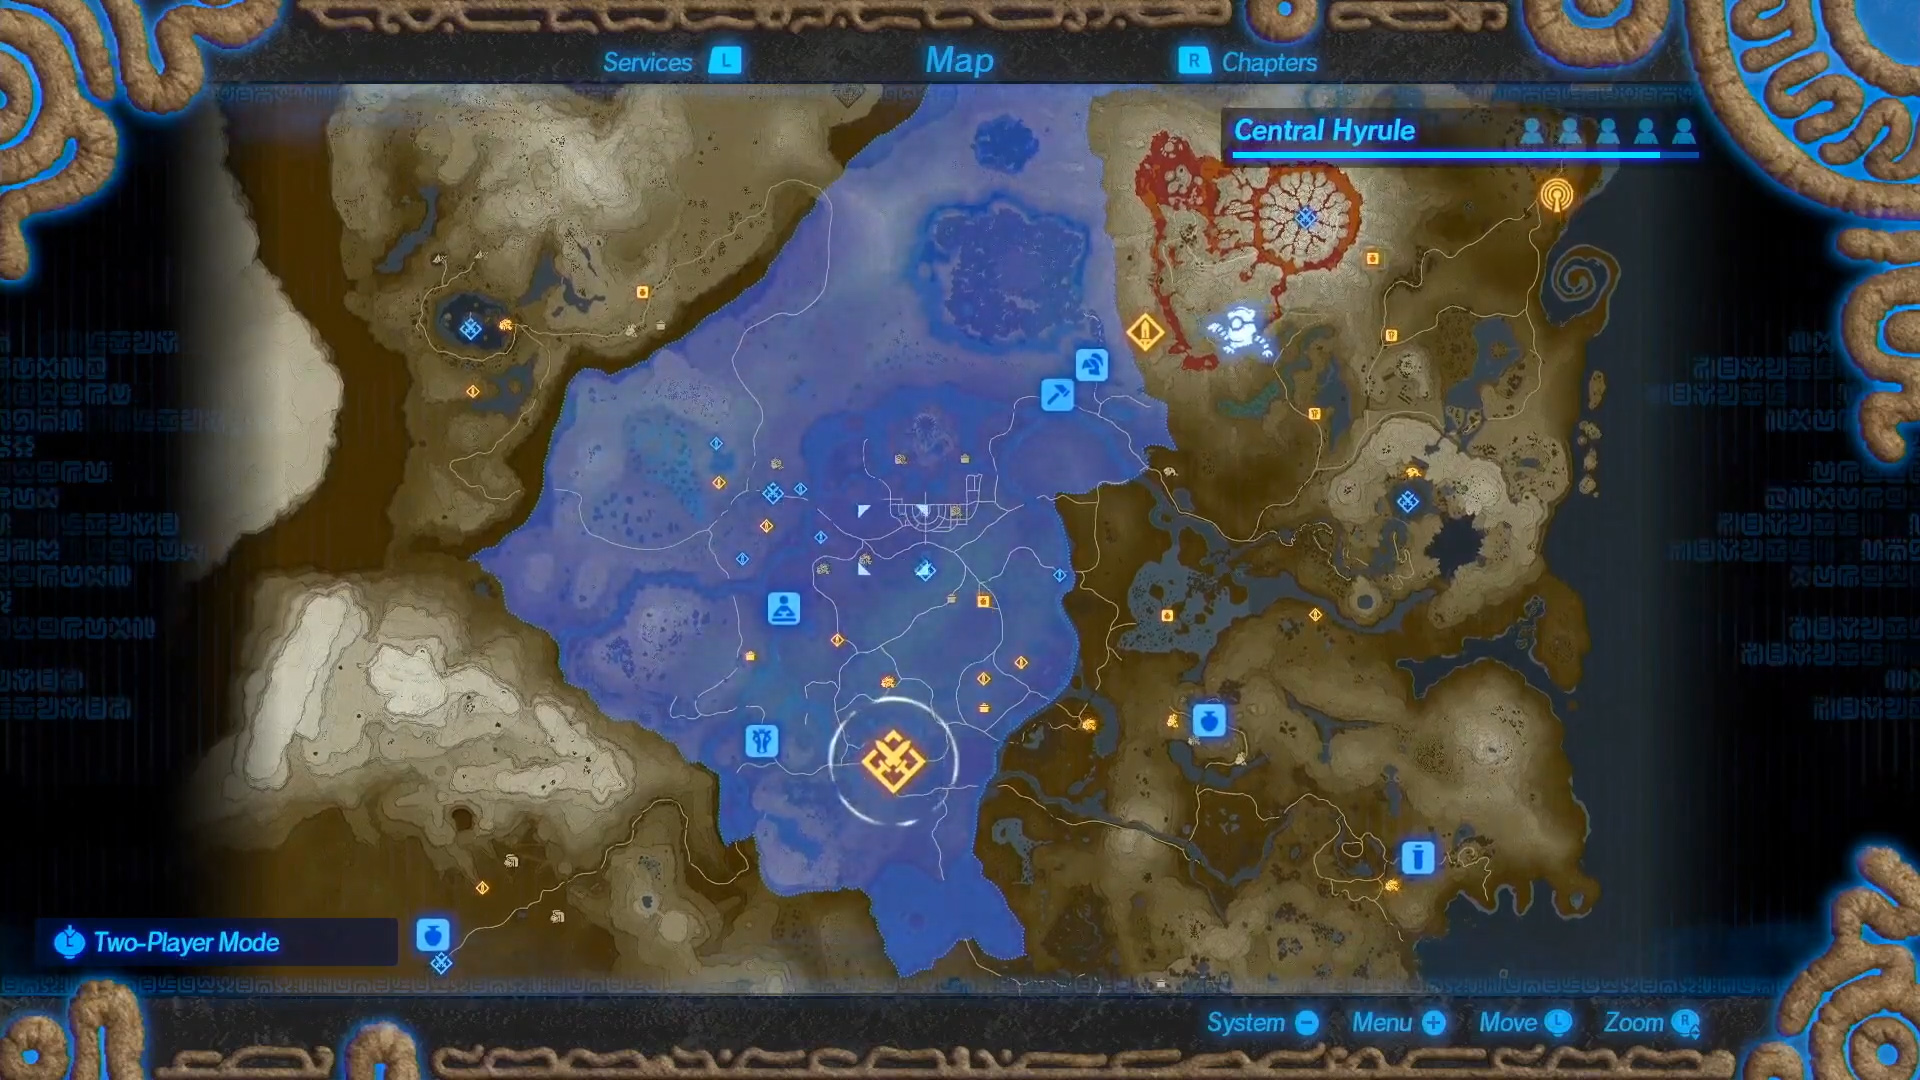 Hyrule Warriors: Age of Calamity map